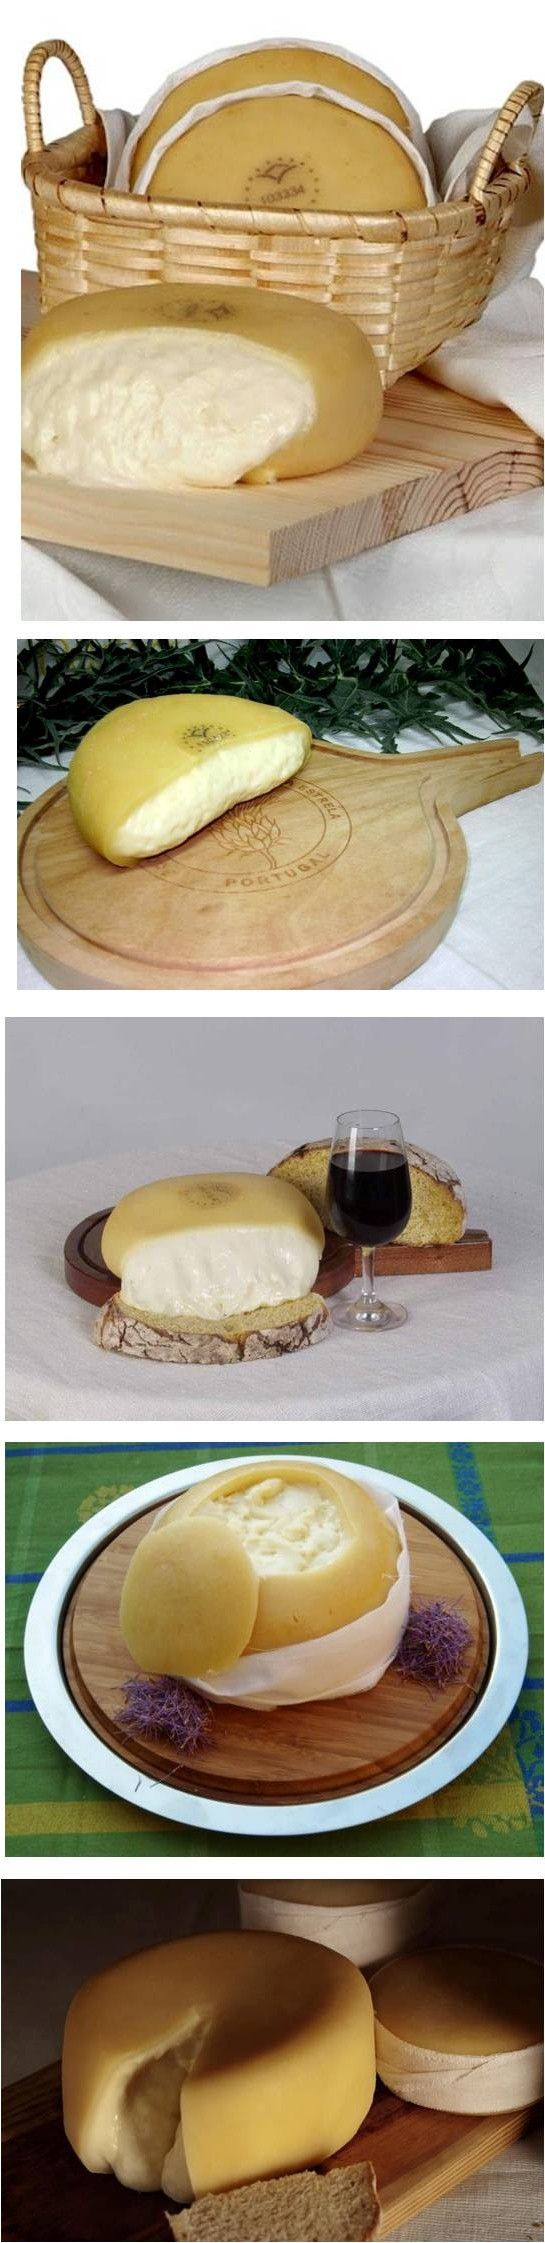 Made in Portugal   From Covilhã the famous Serra cheese, made from the milk of ewes and prized for its rich flavour, but also delicious home-made bread